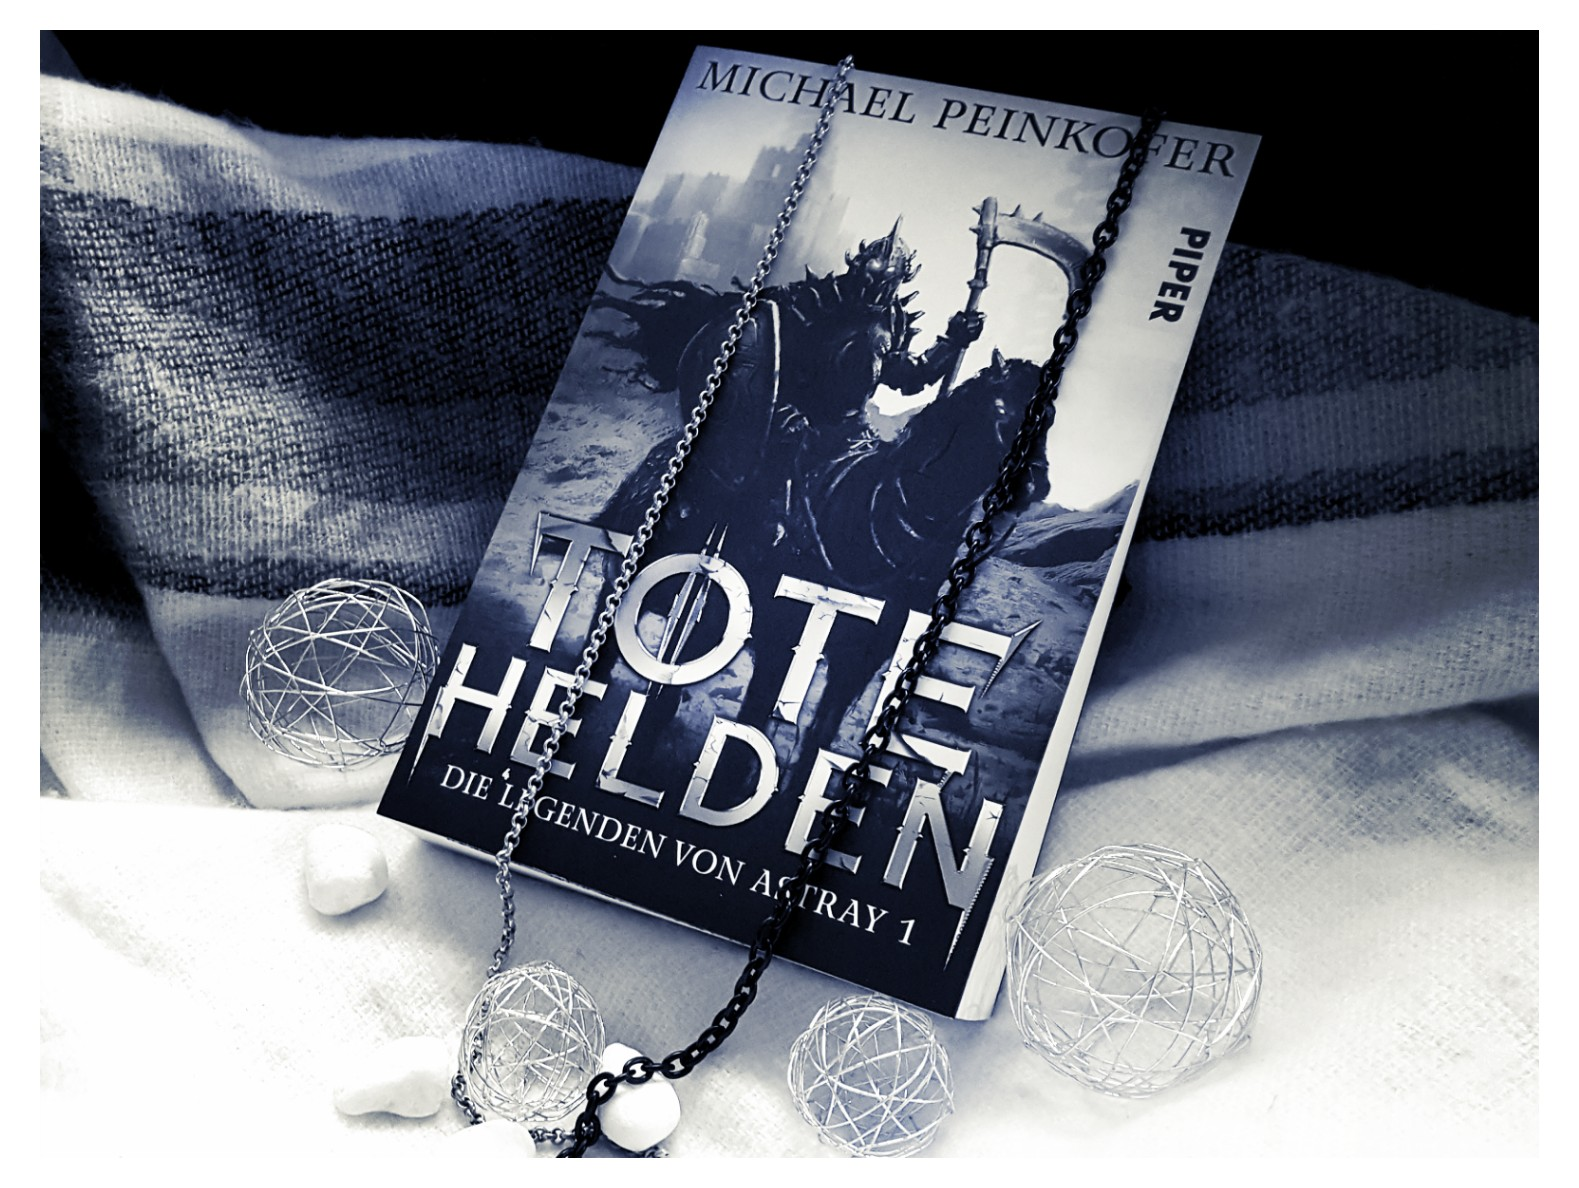 [Rezension] Michael Peinkofer – Tote Helden. Die Legenden von Astray